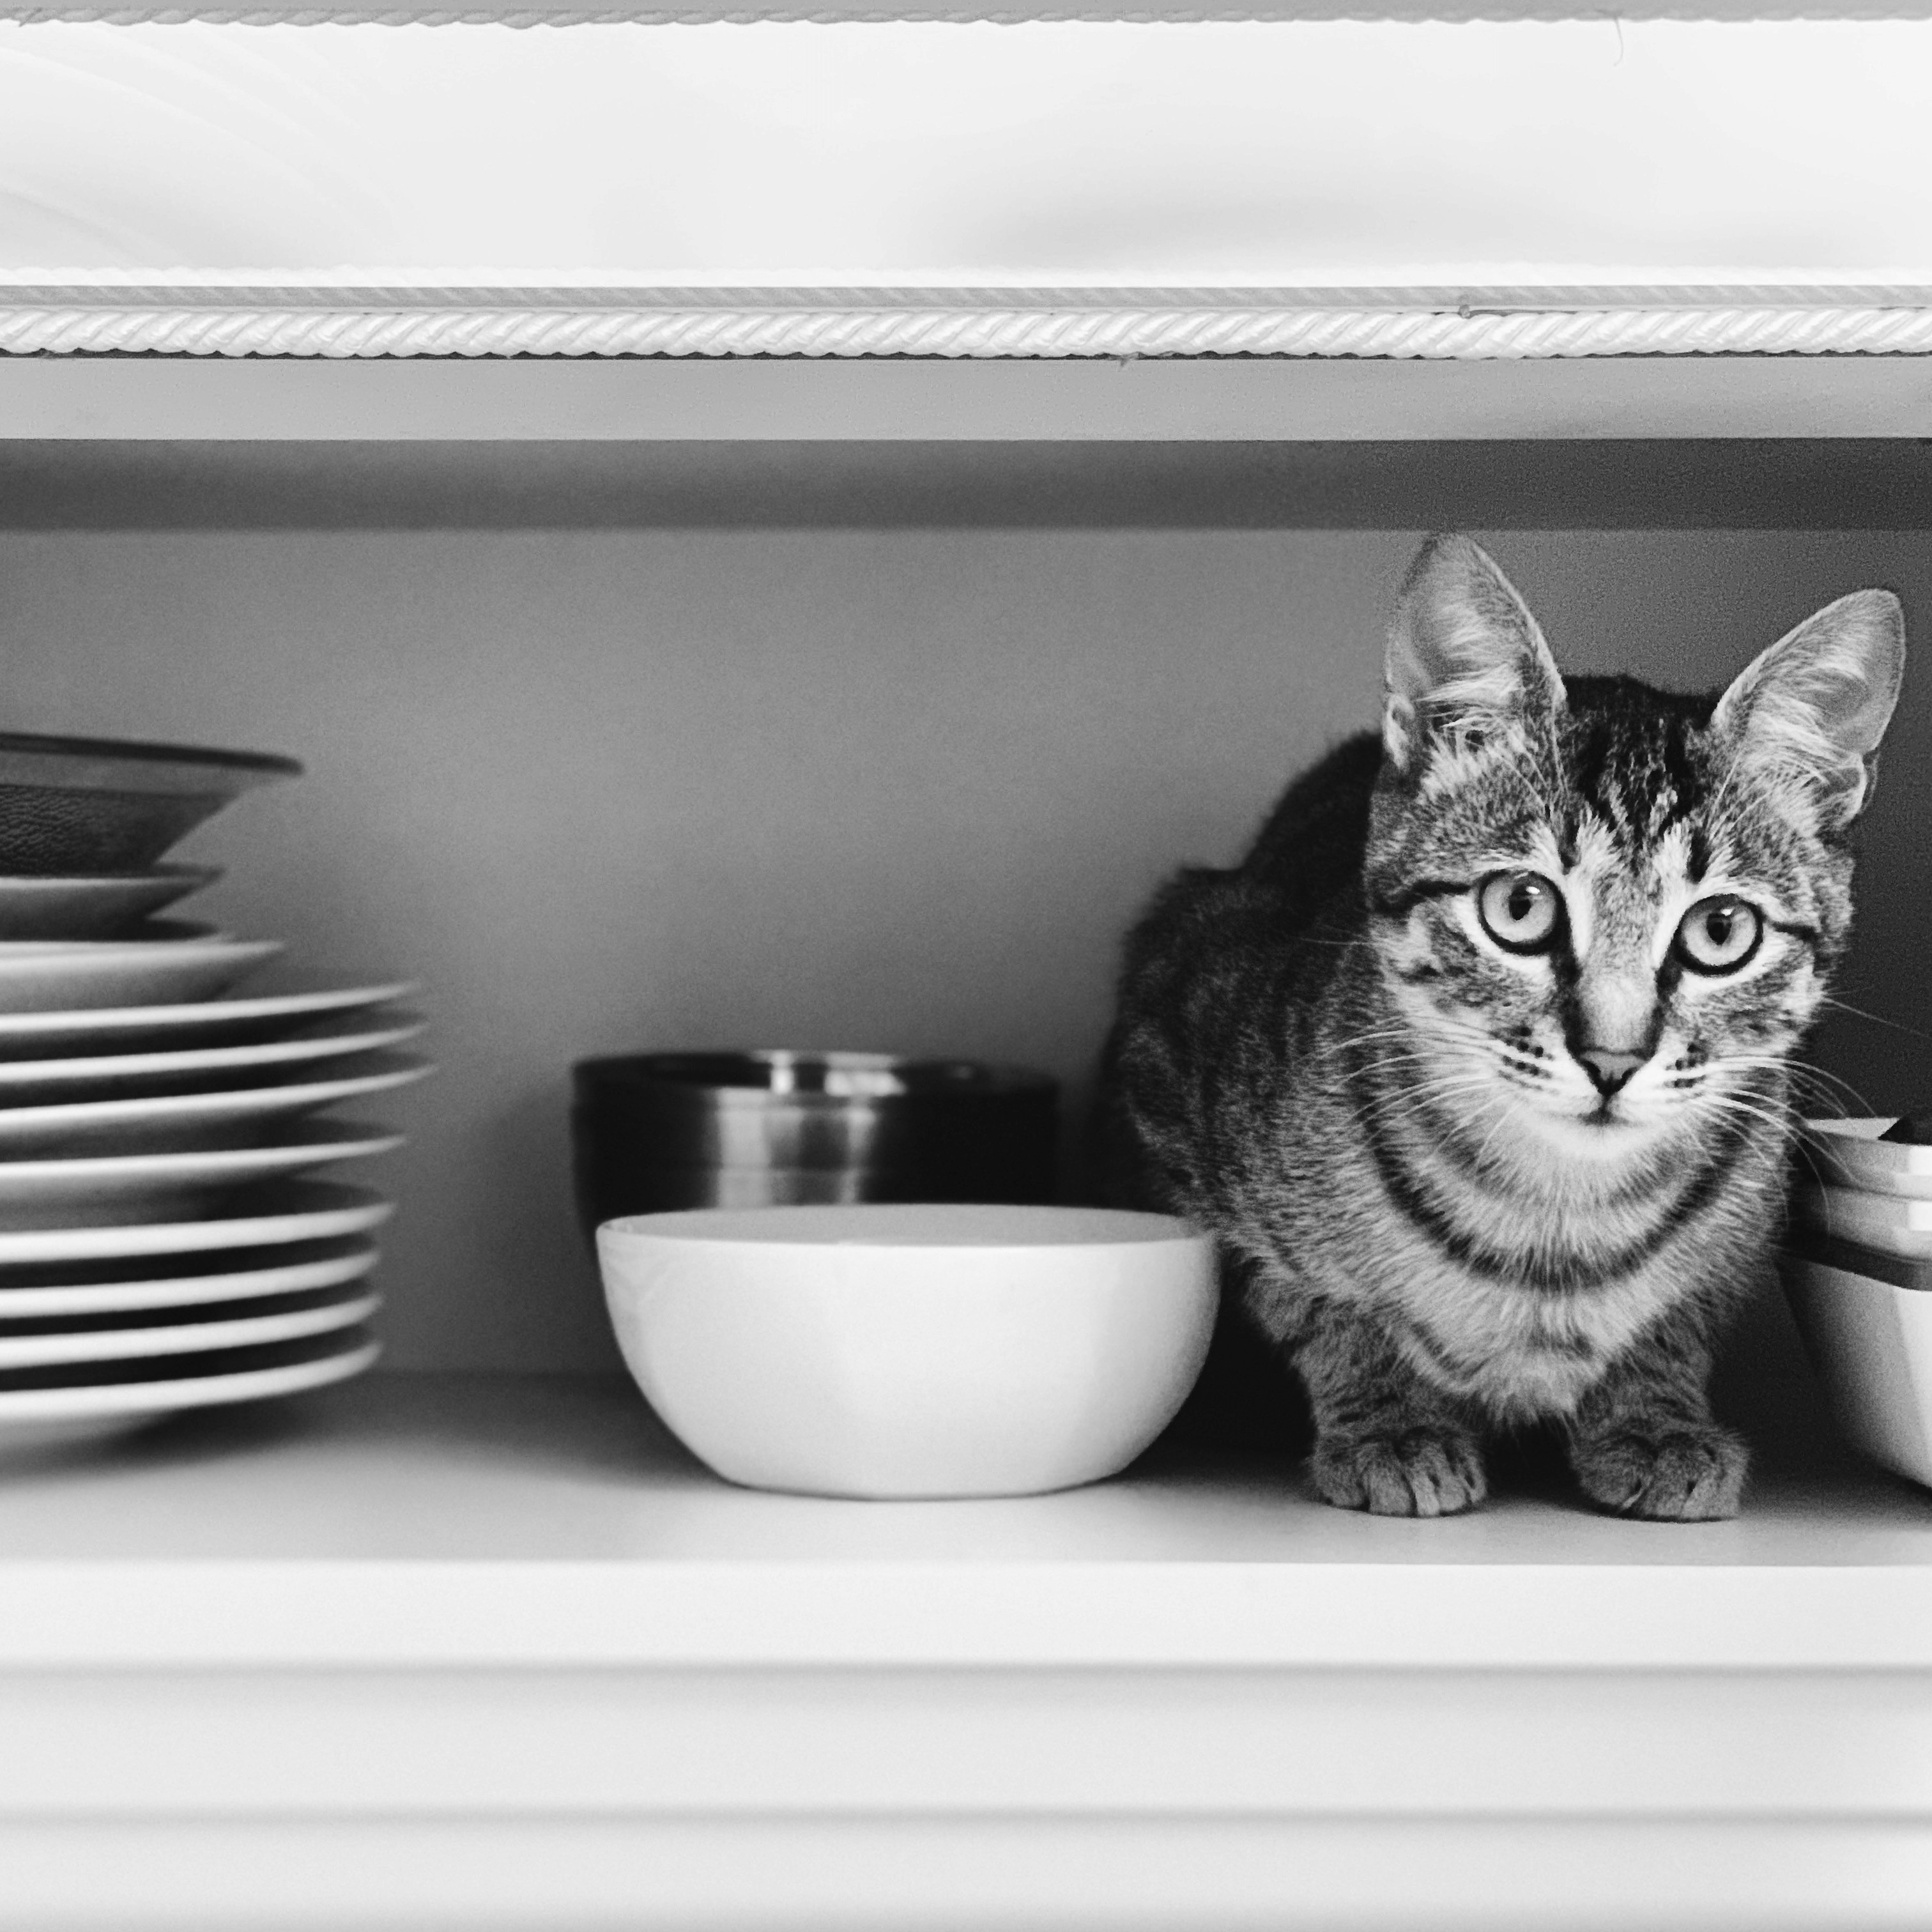 Cat in a cupboard with dishes